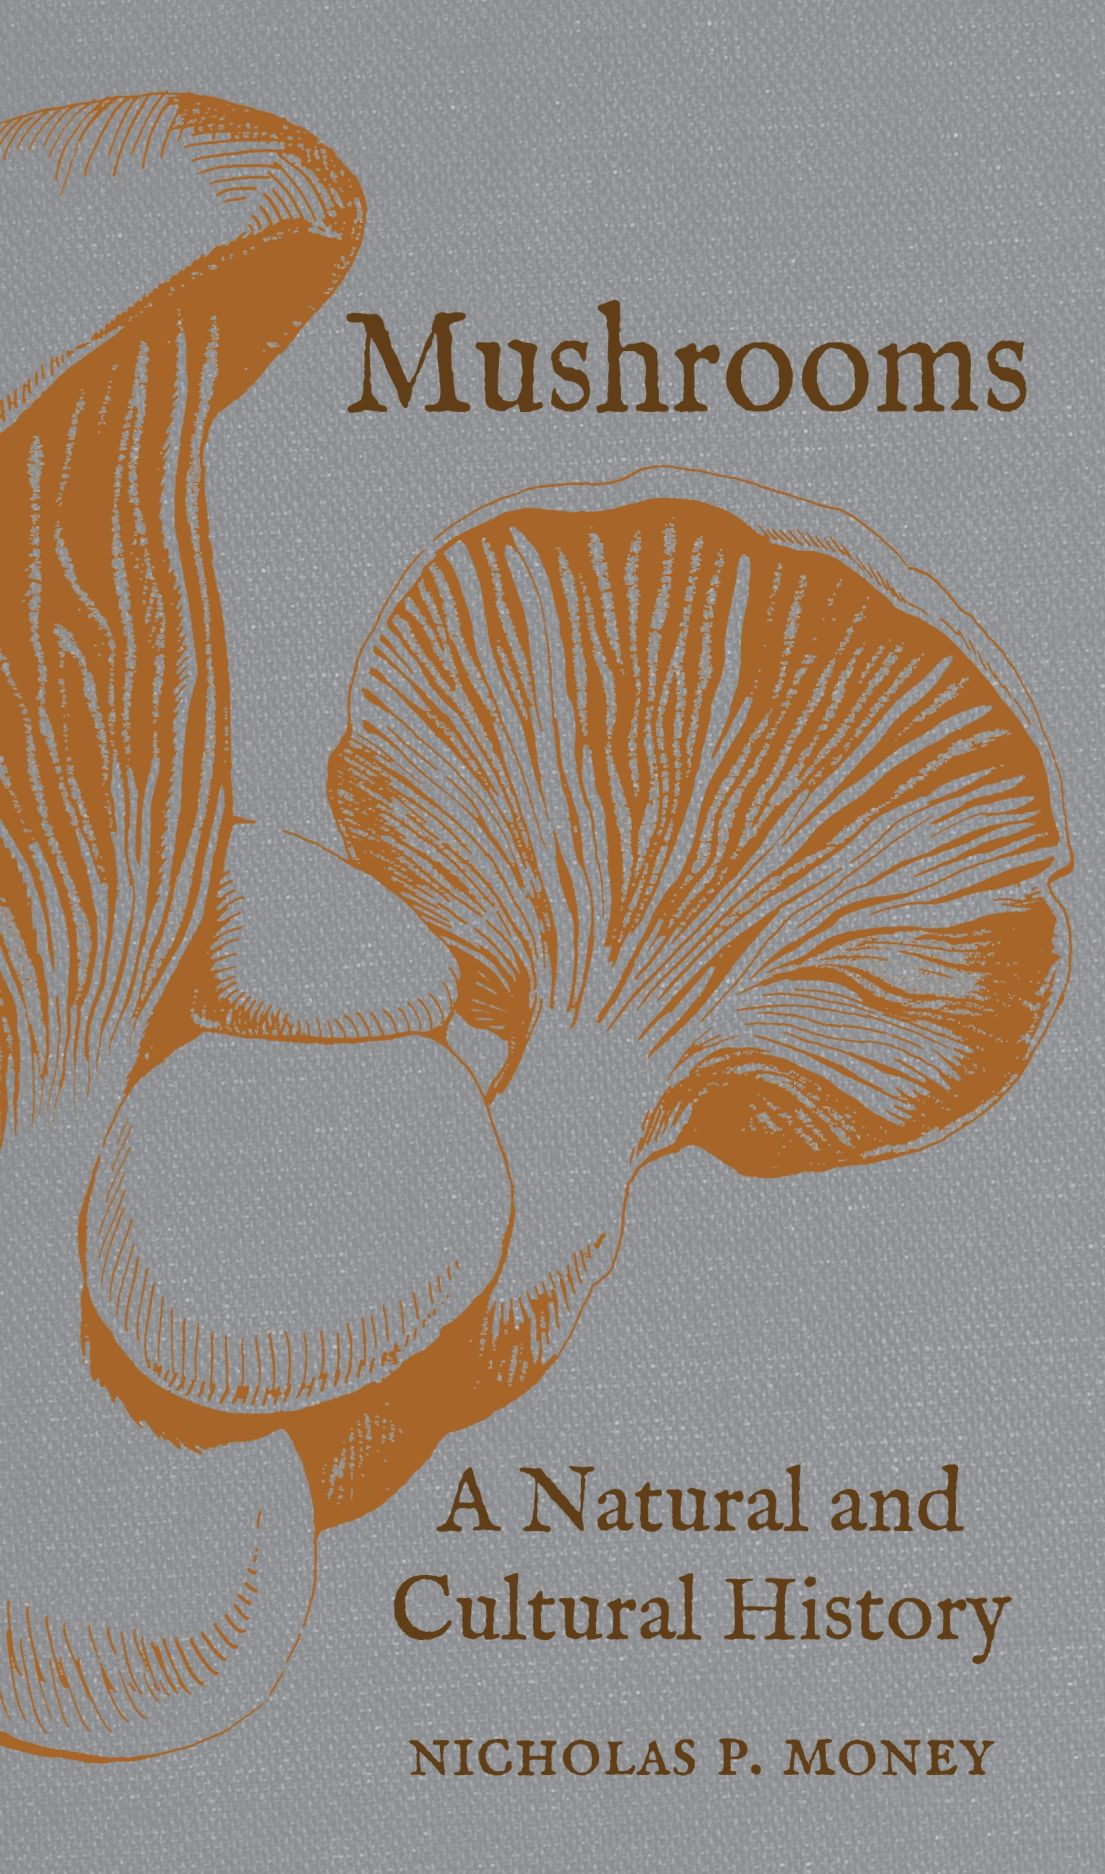 Mushrooms: A Natural and Cultural History